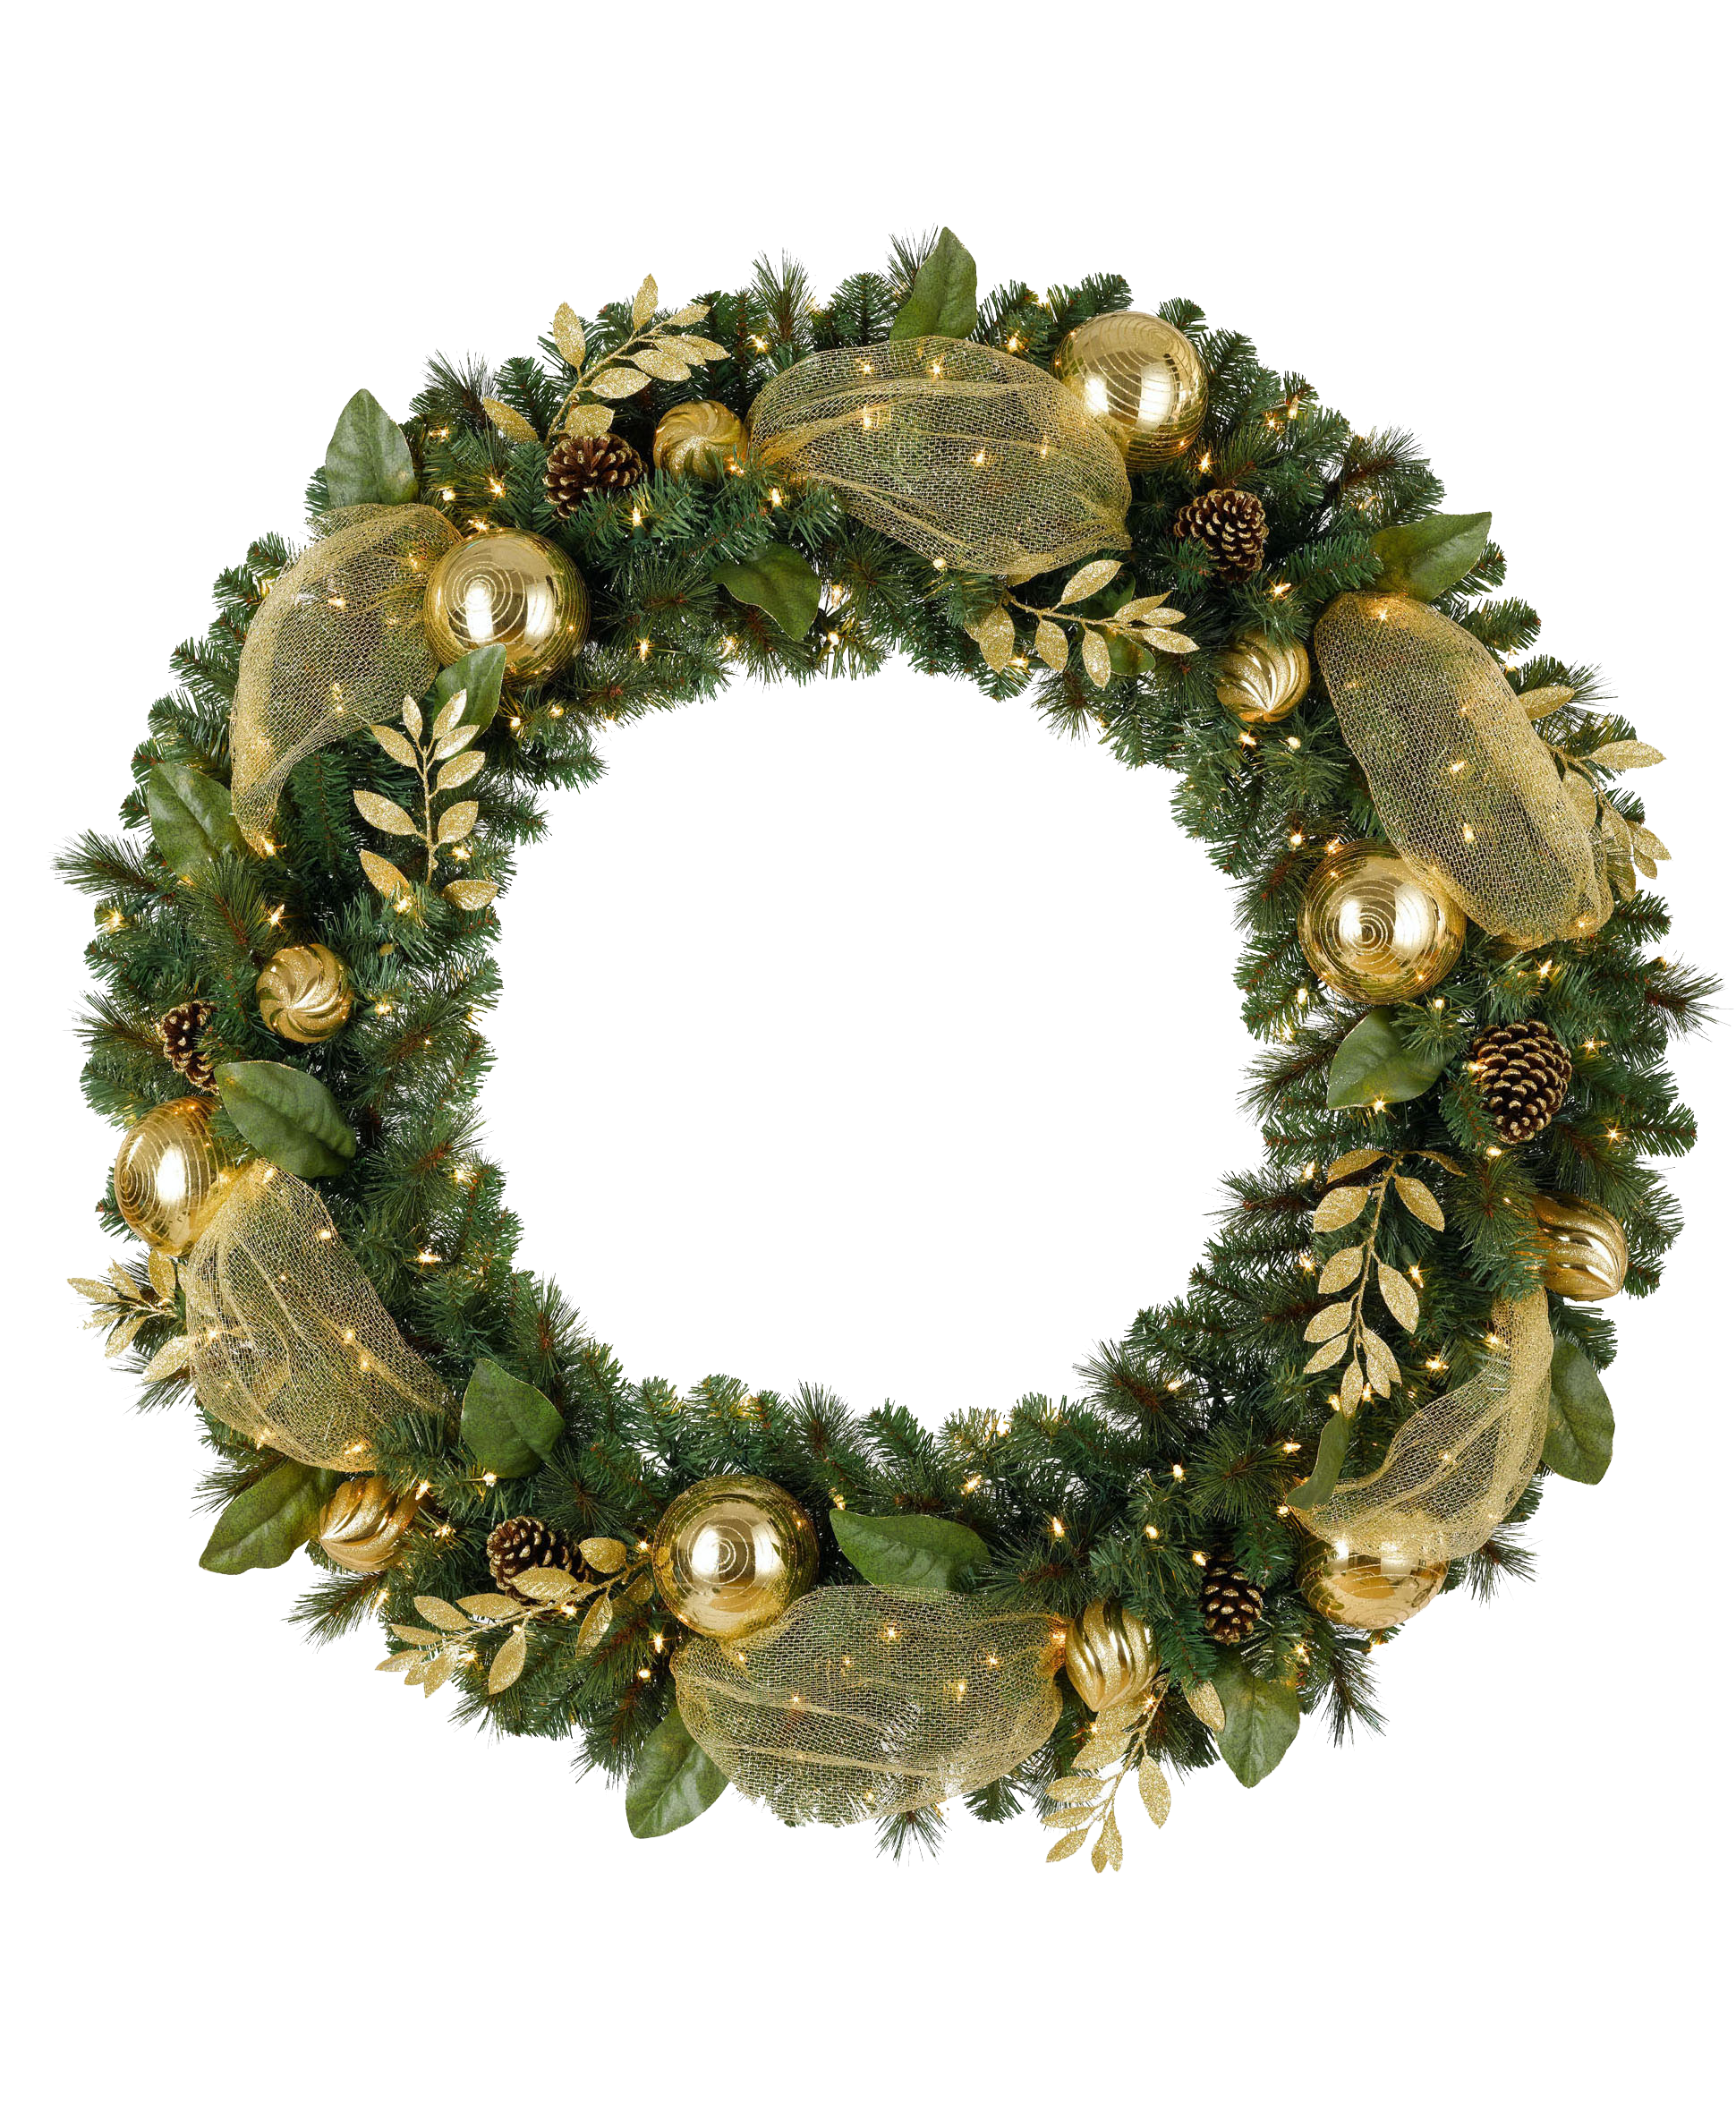 Christmas garland transparent png. Free hd wreath